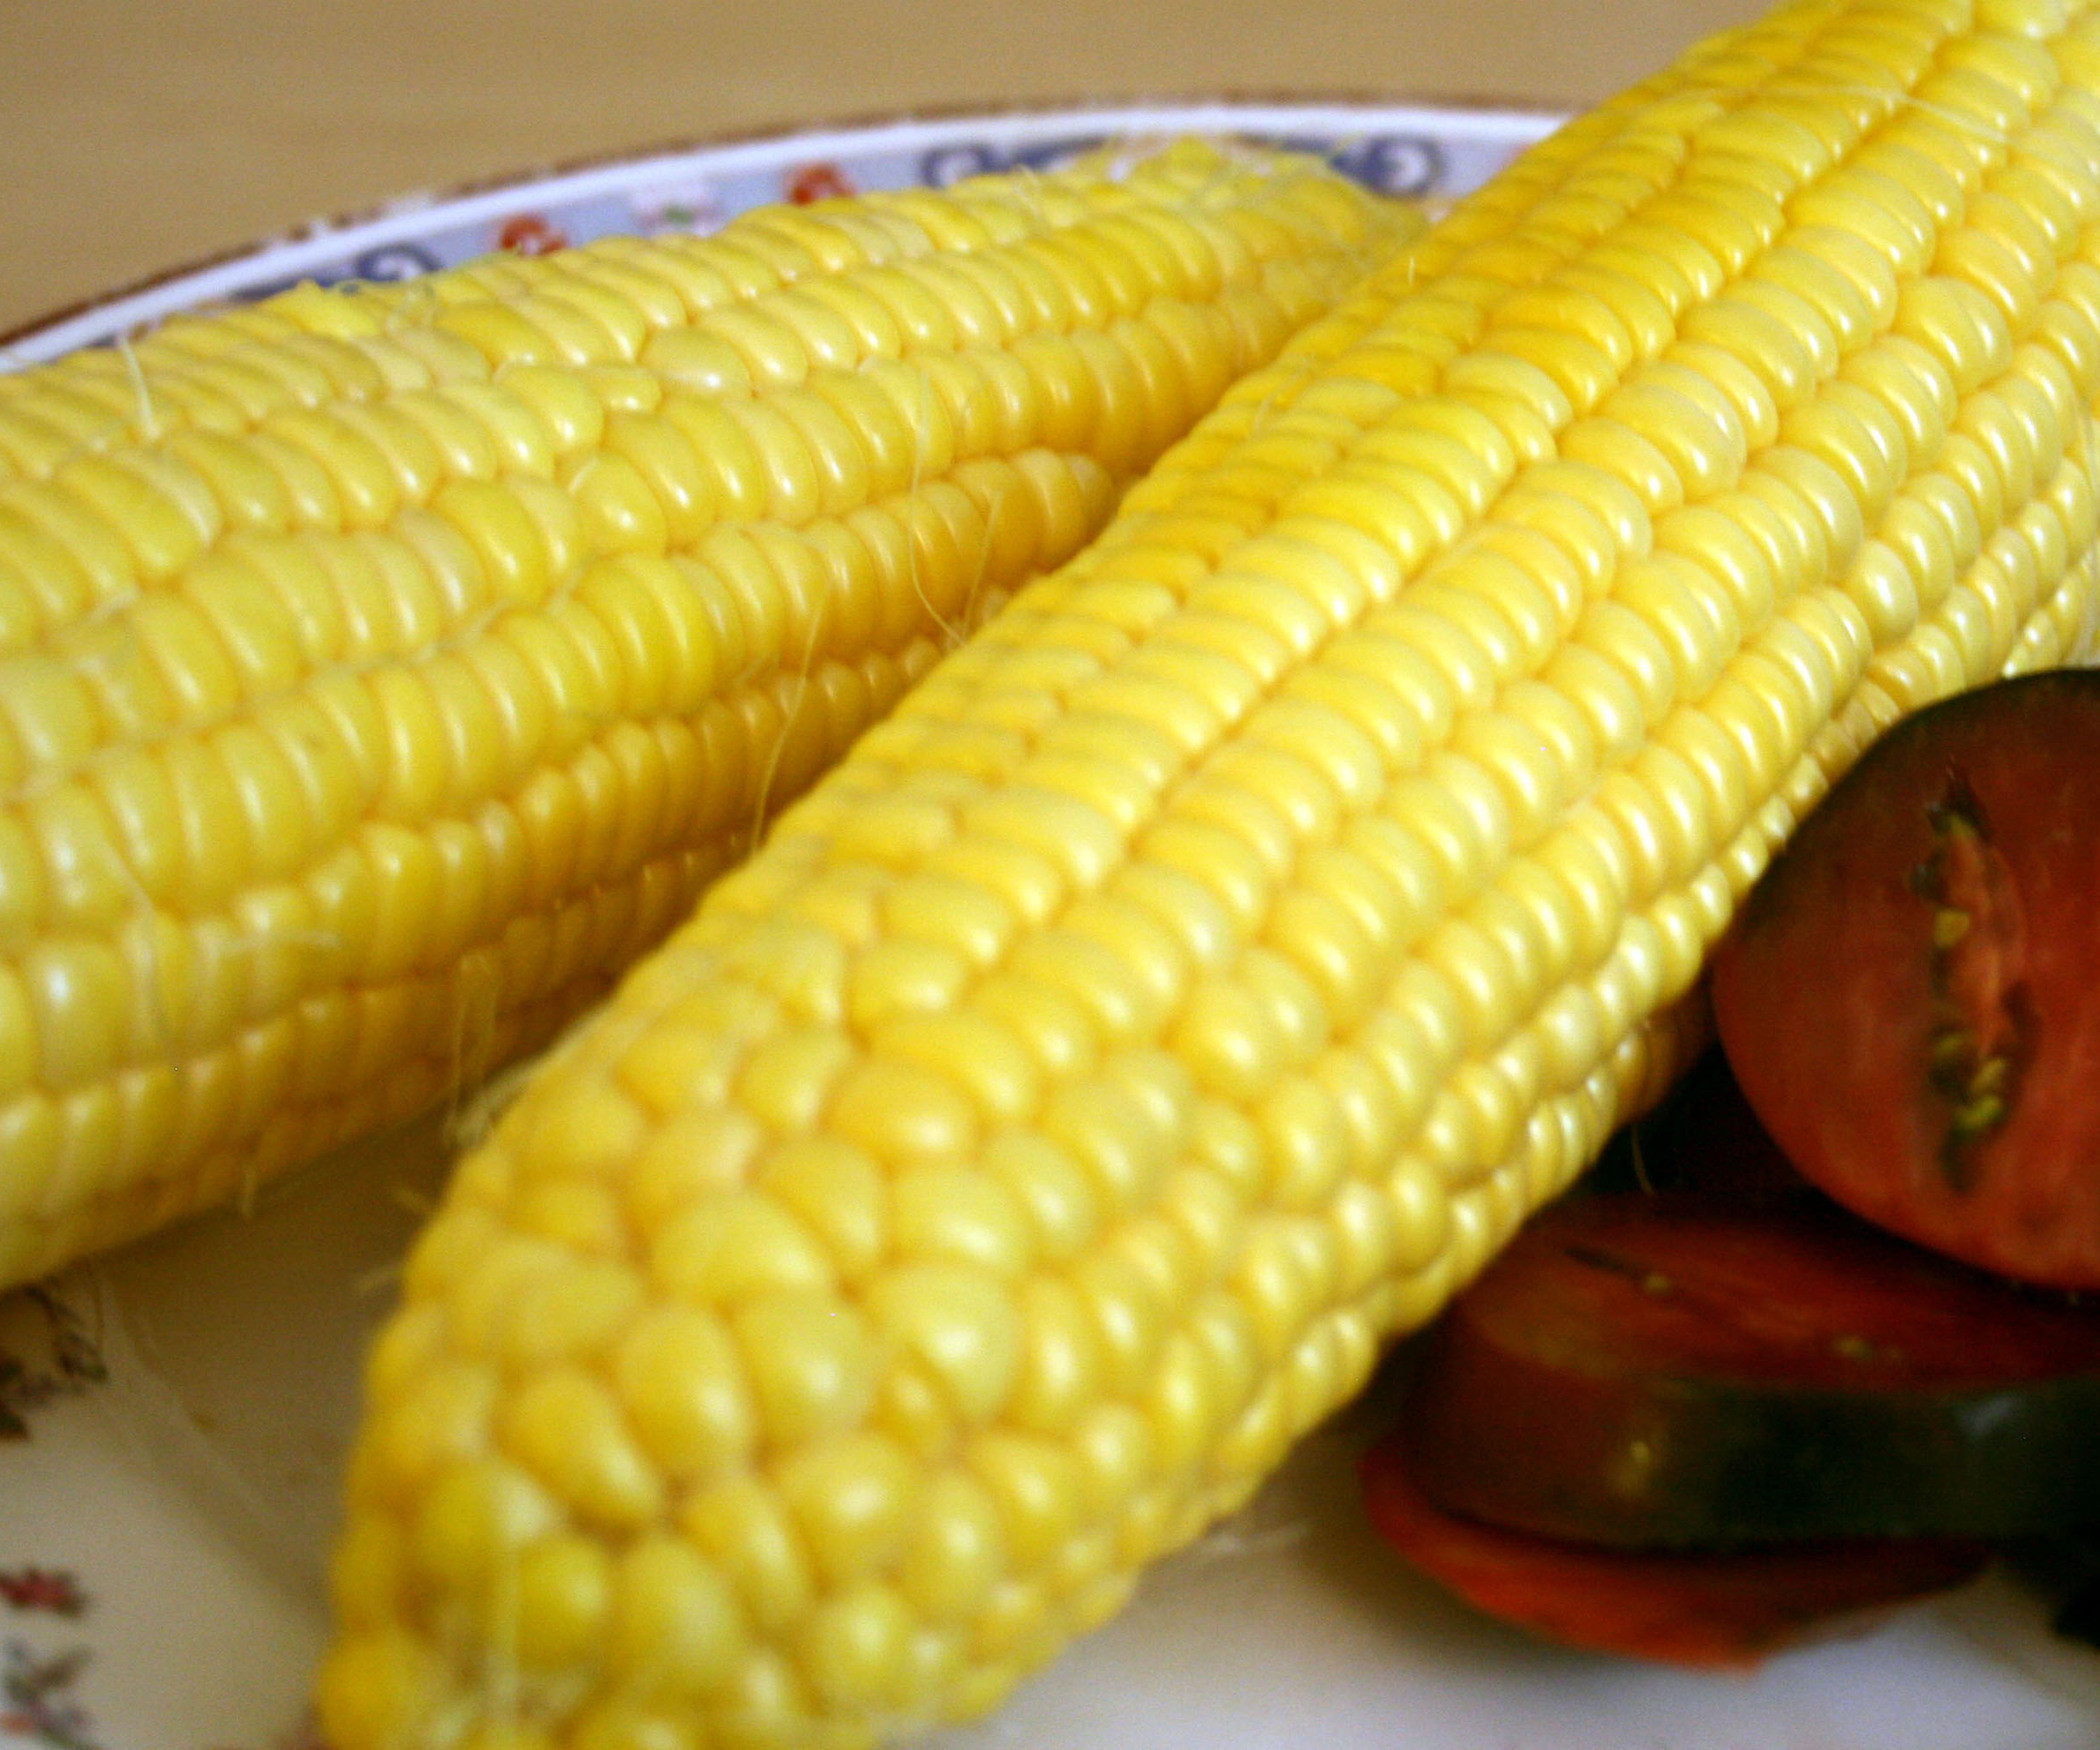 Microwave Corn On The Cob In Husk  microwave corn on the cob without husk recipe